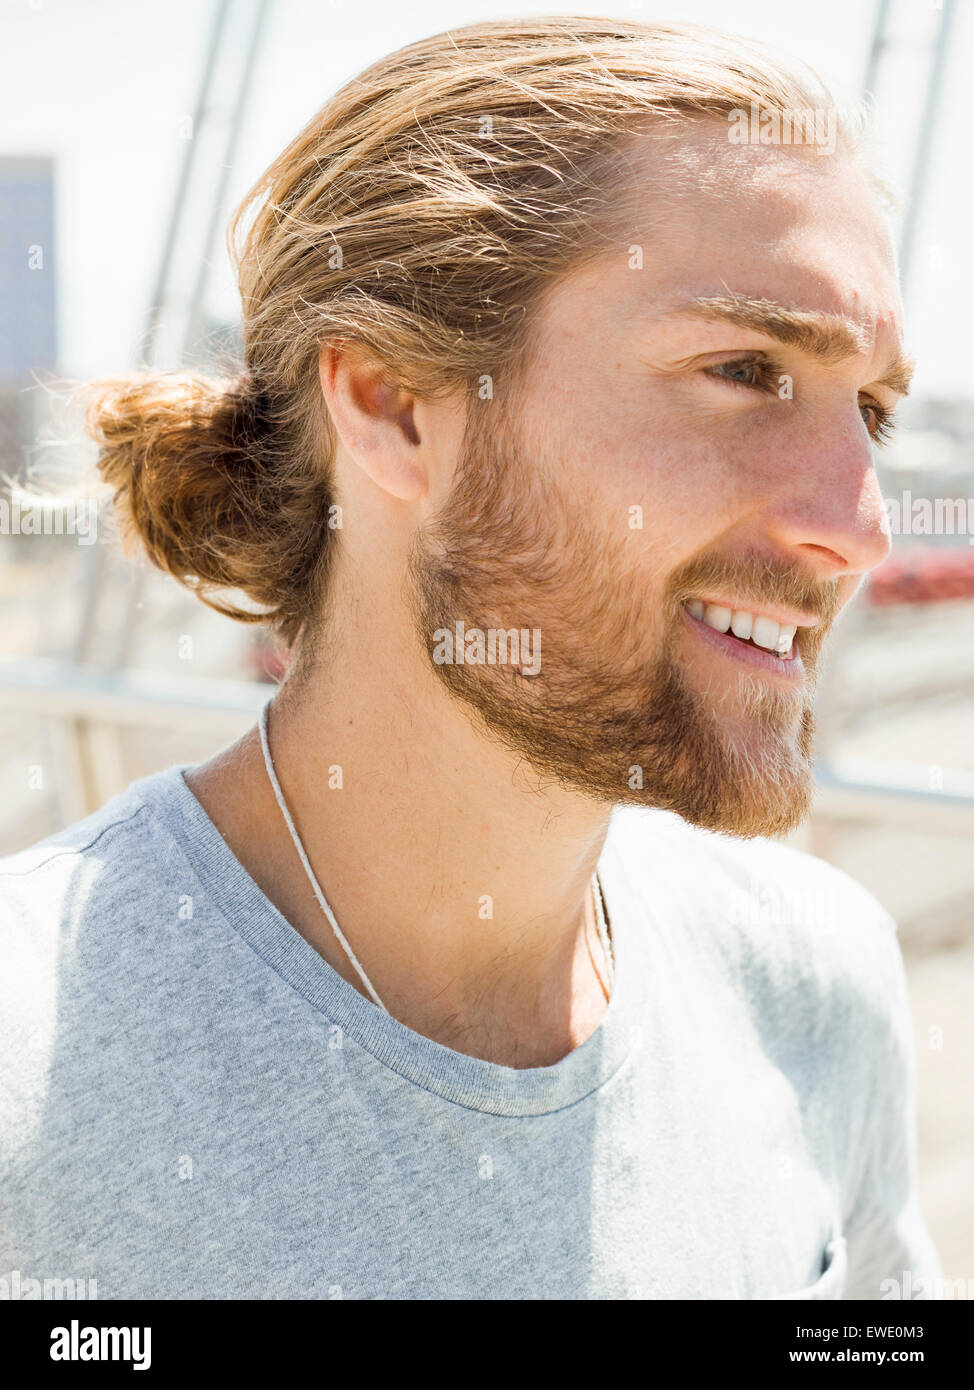 A young man with beard, red hair and ponytail - Stock Image